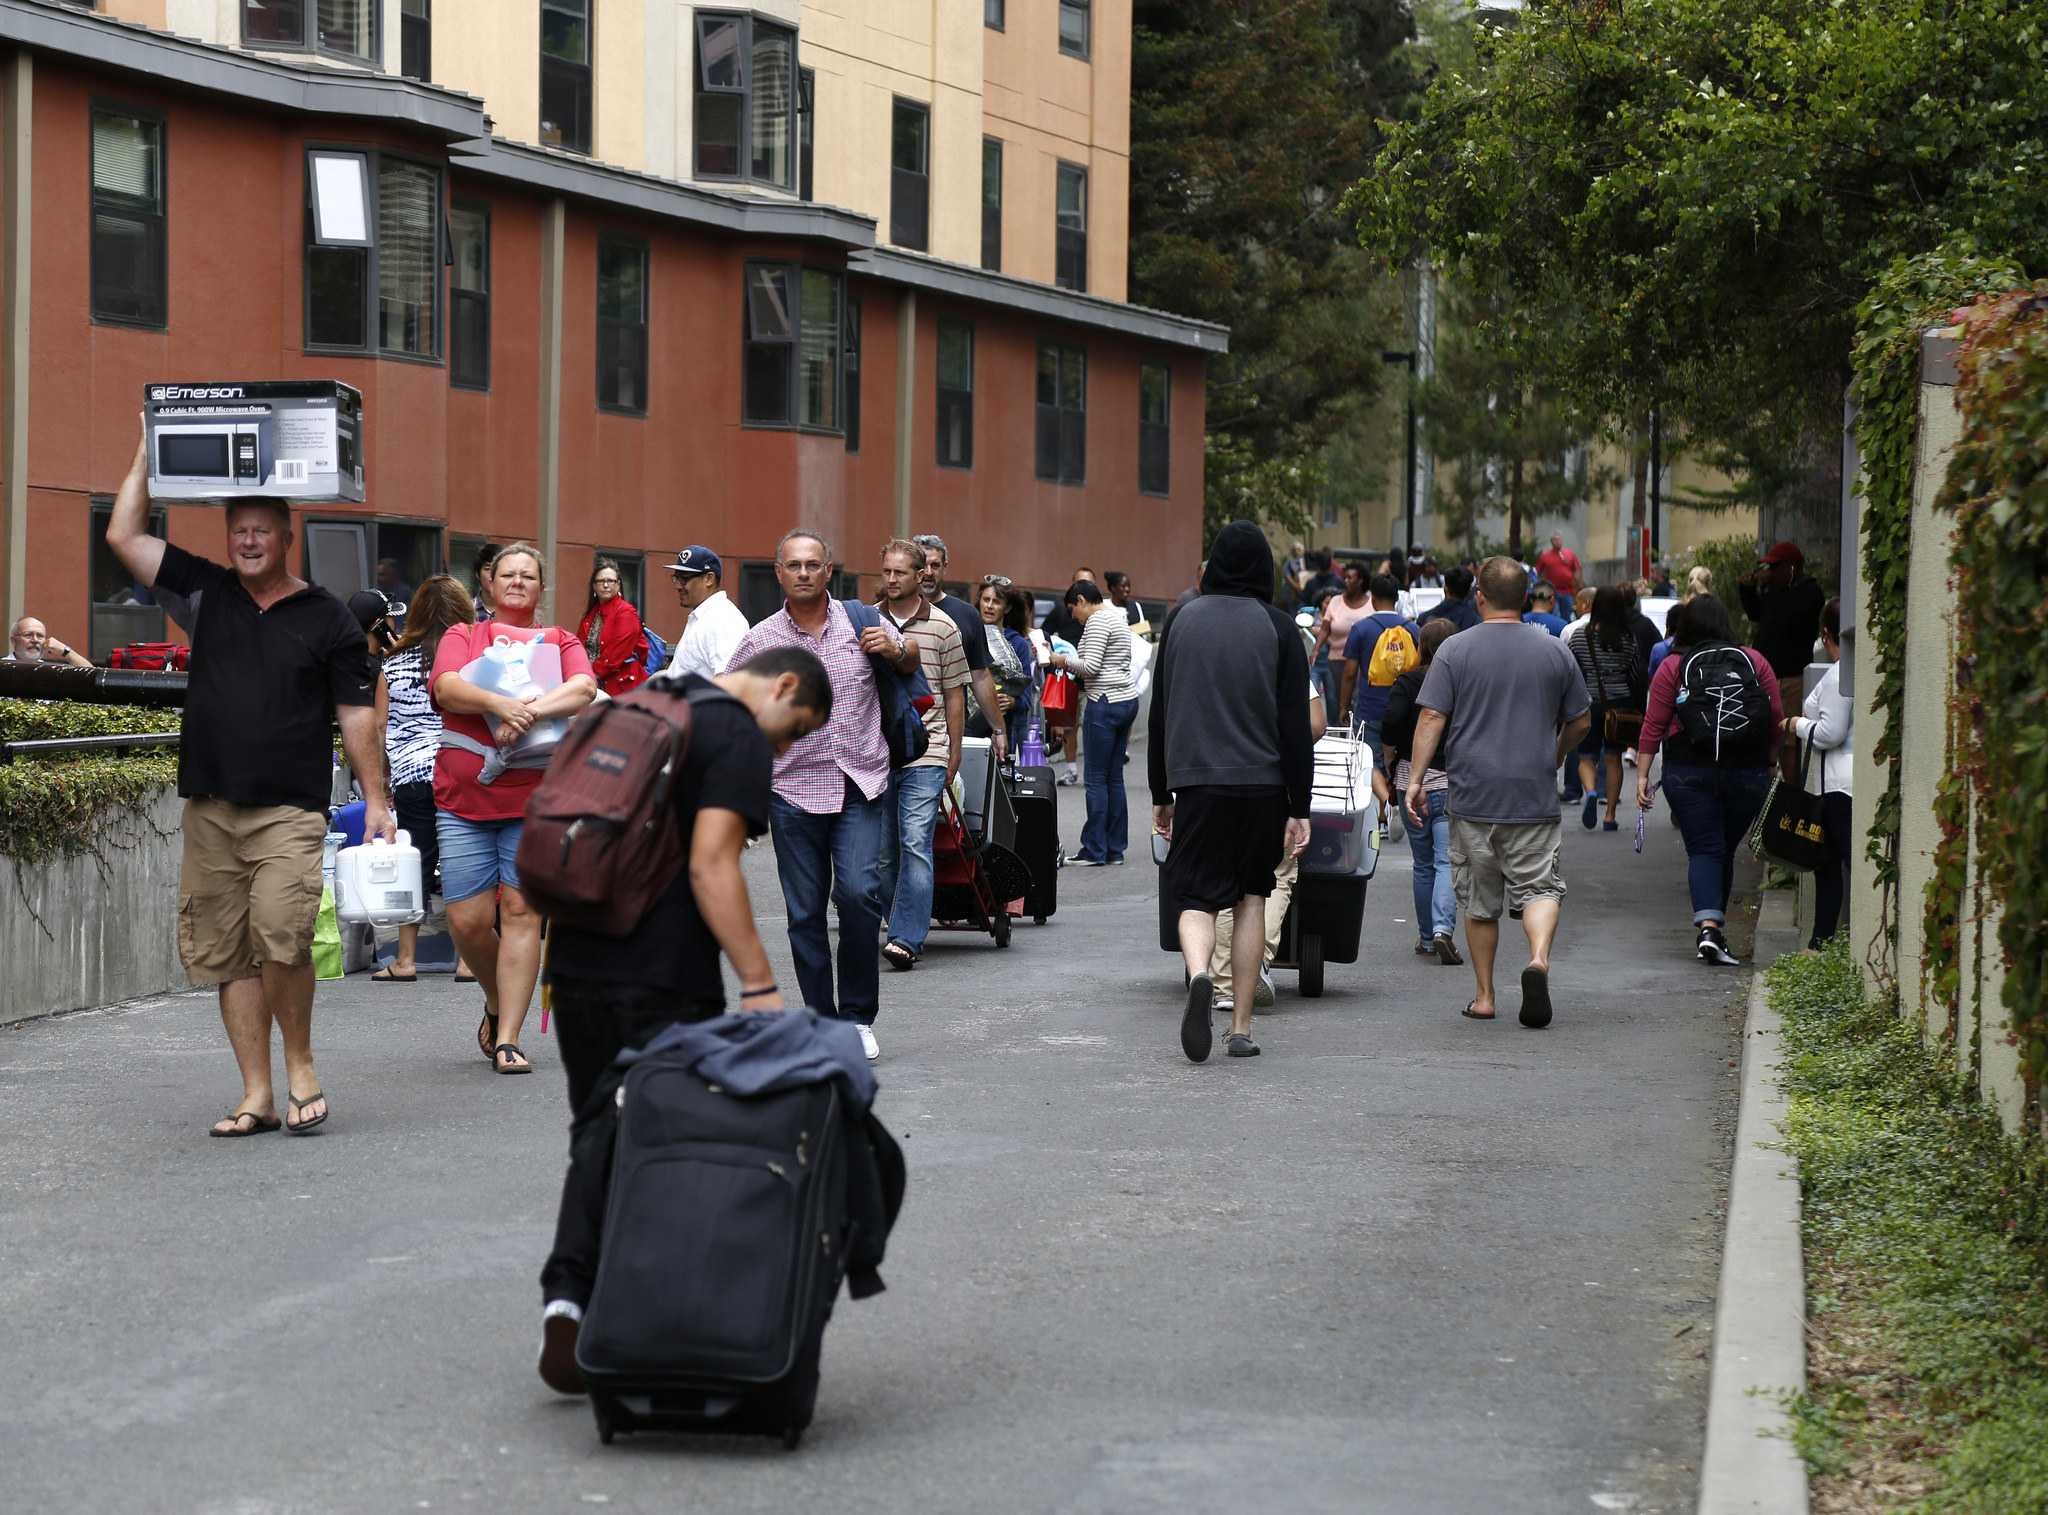 Freshman and their parents fill the walk ways to the dorms on move in day Thursday Aug. 20 at SF State. (Emma Chiang / Xpress)